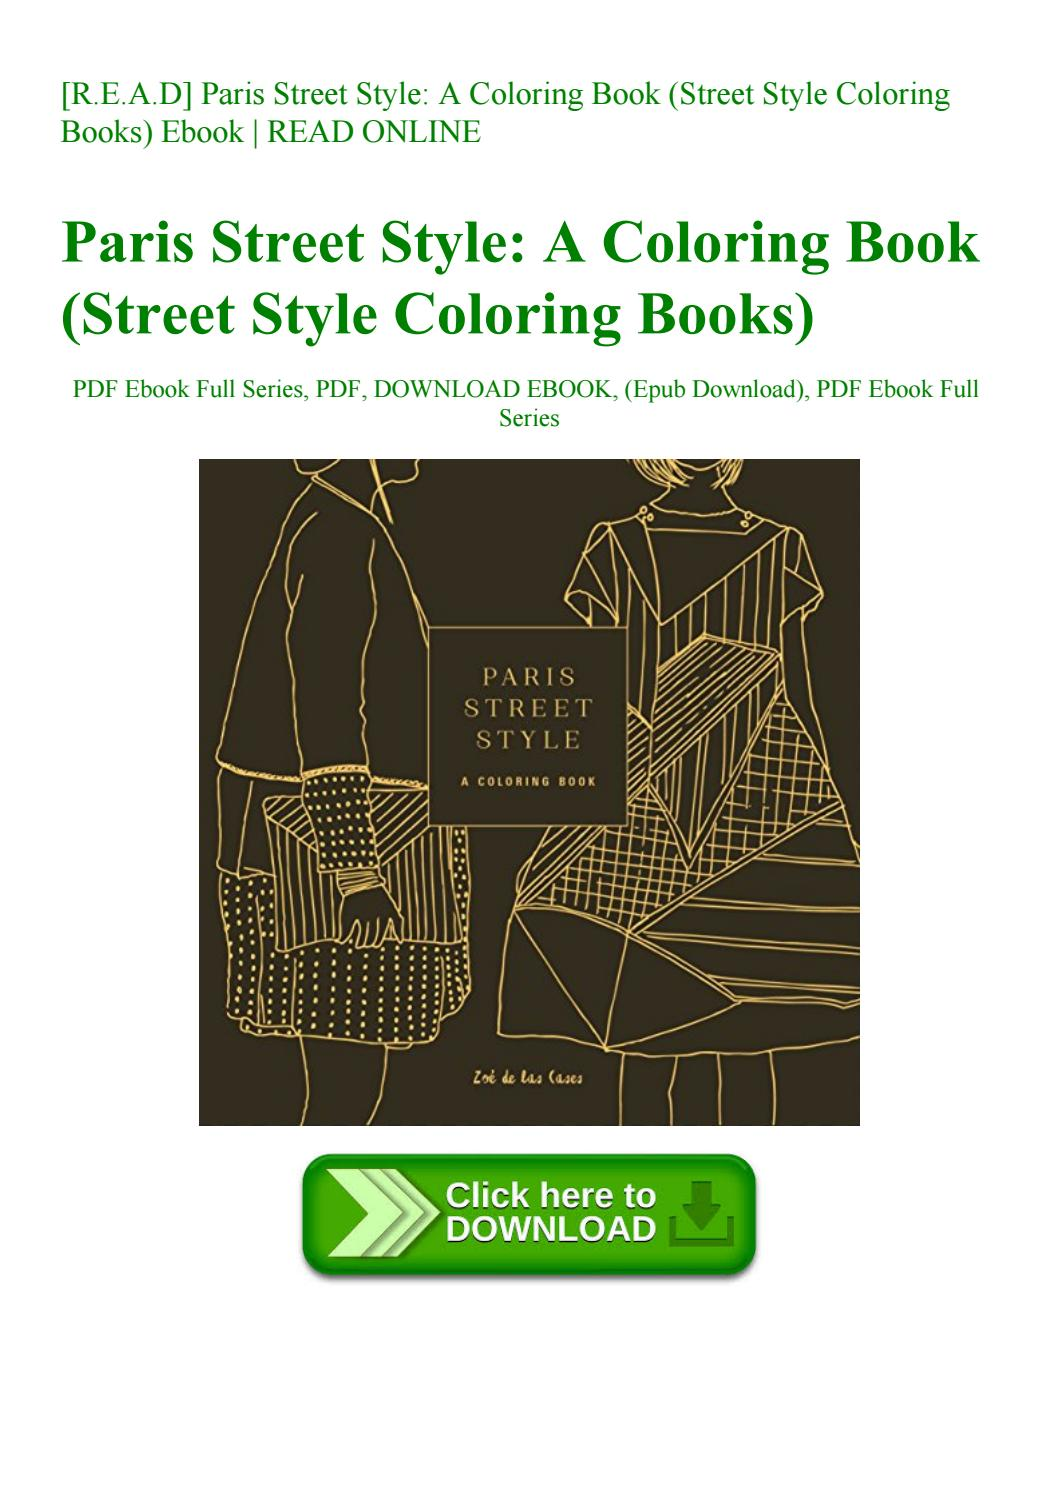 R E A D] Paris Street Style A Coloring Book (street Style Coloring